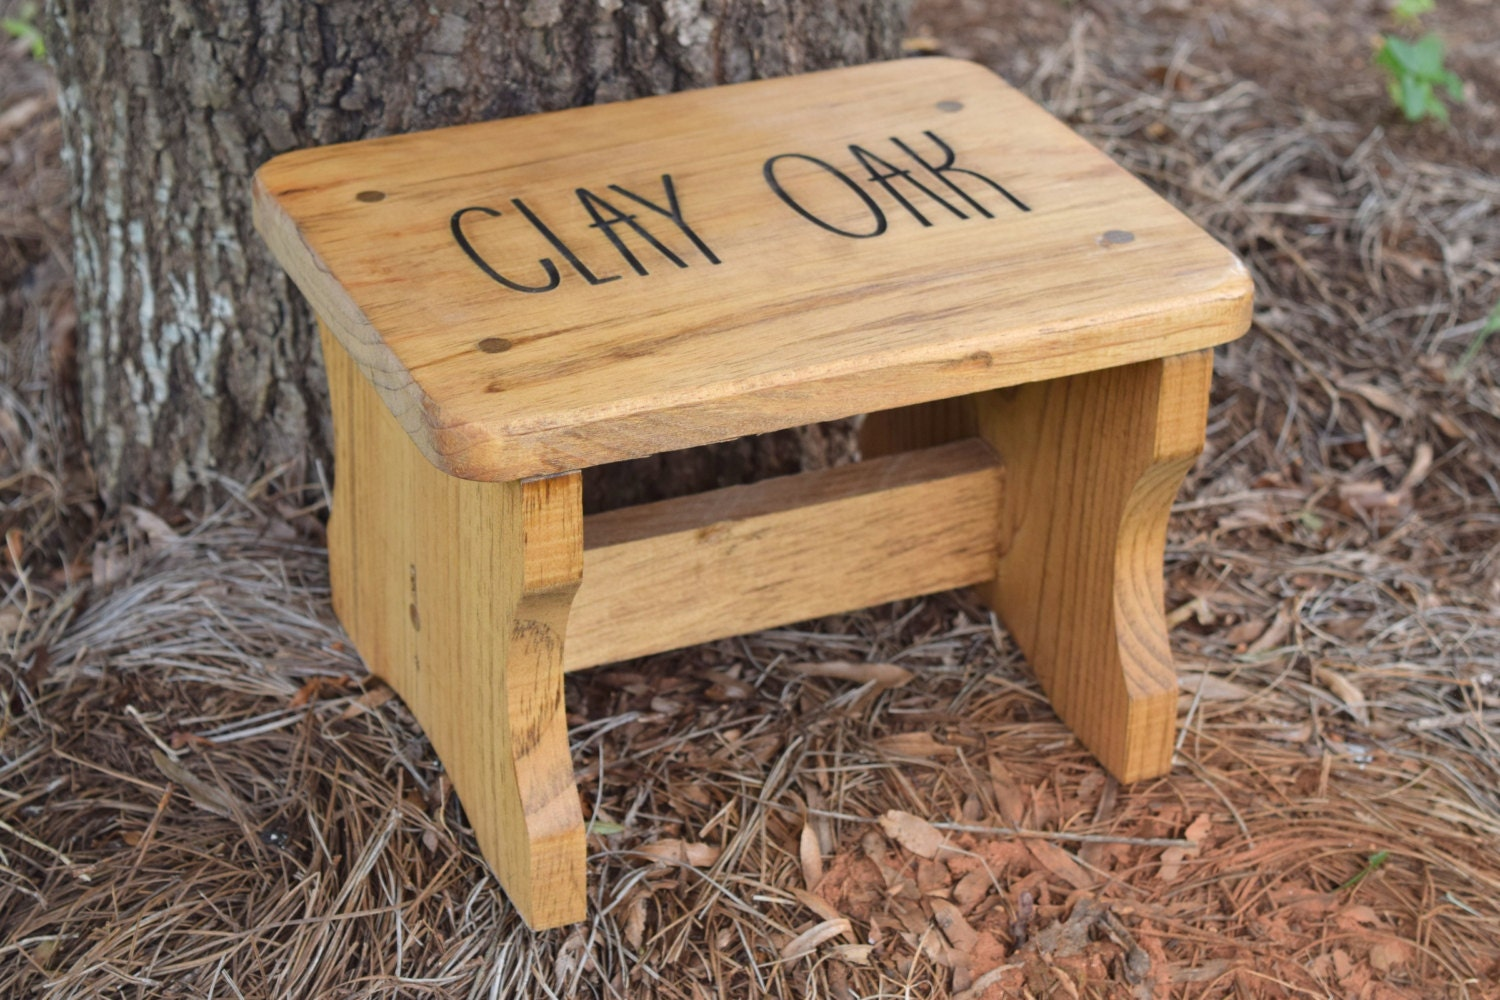 Personalized kids stepping stool rustic decor